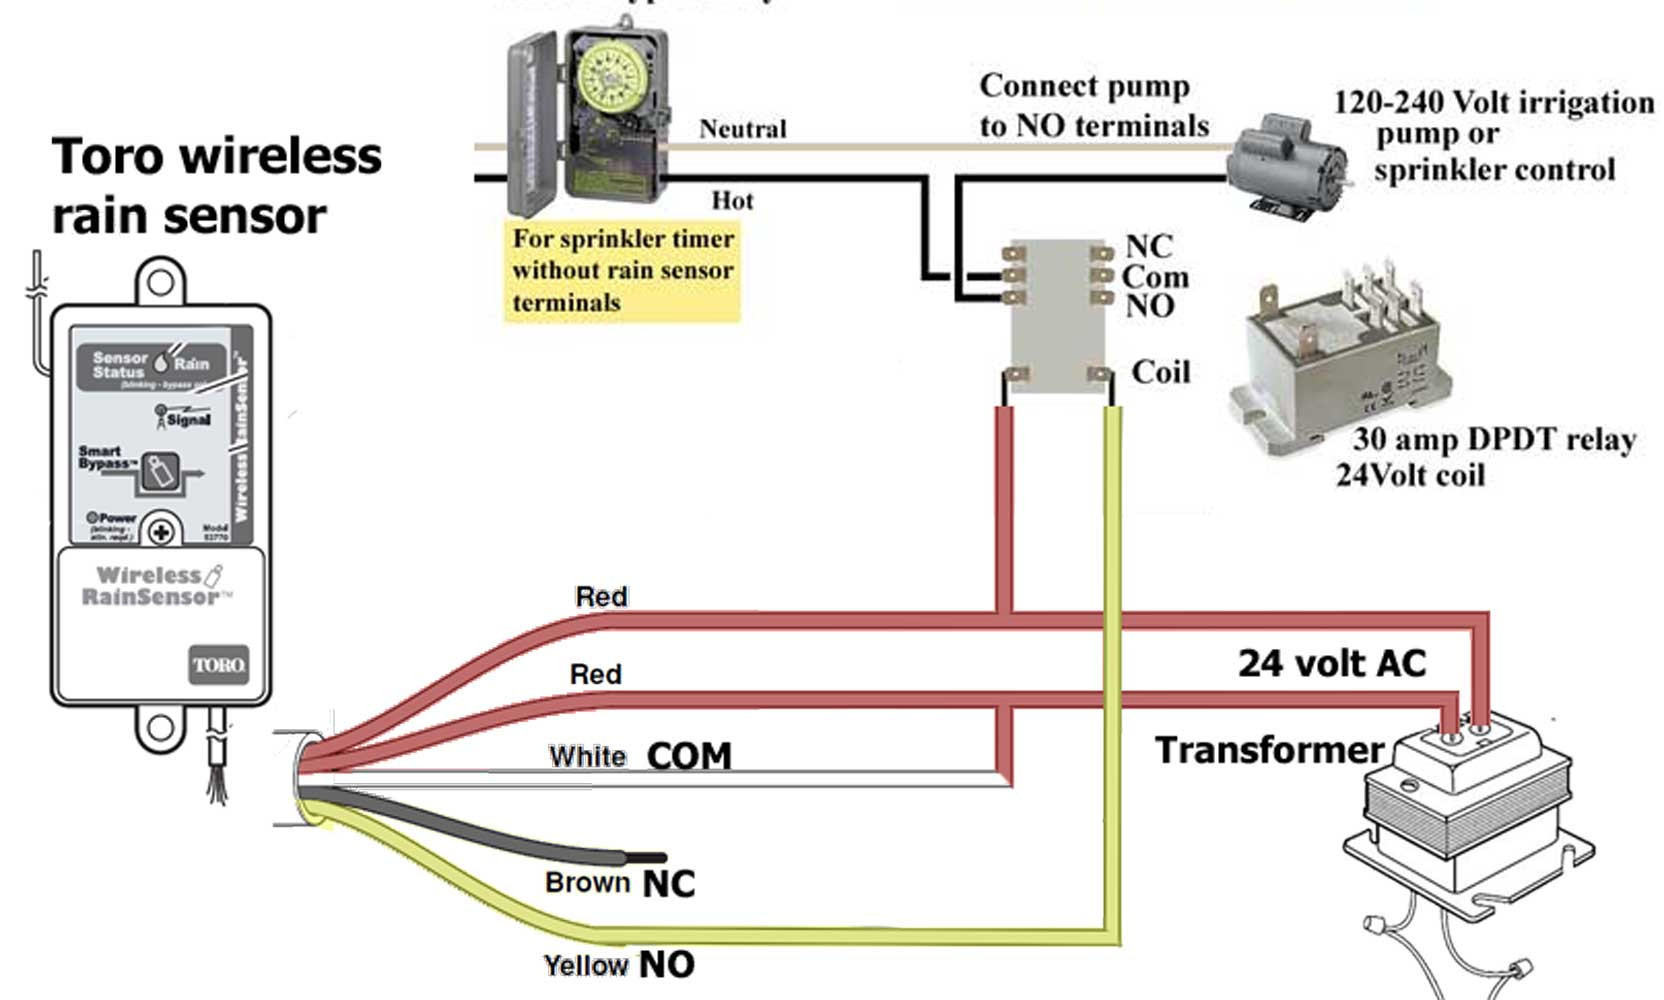 DIAGRAM] 110v Pool Timer Wiring Diagram FULL Version HD Quality Wiring  Diagram - KIA4550WIRING.CONCESSIONARIABELOGISENIGALLIA.ITconcessionariabelogisenigallia.it